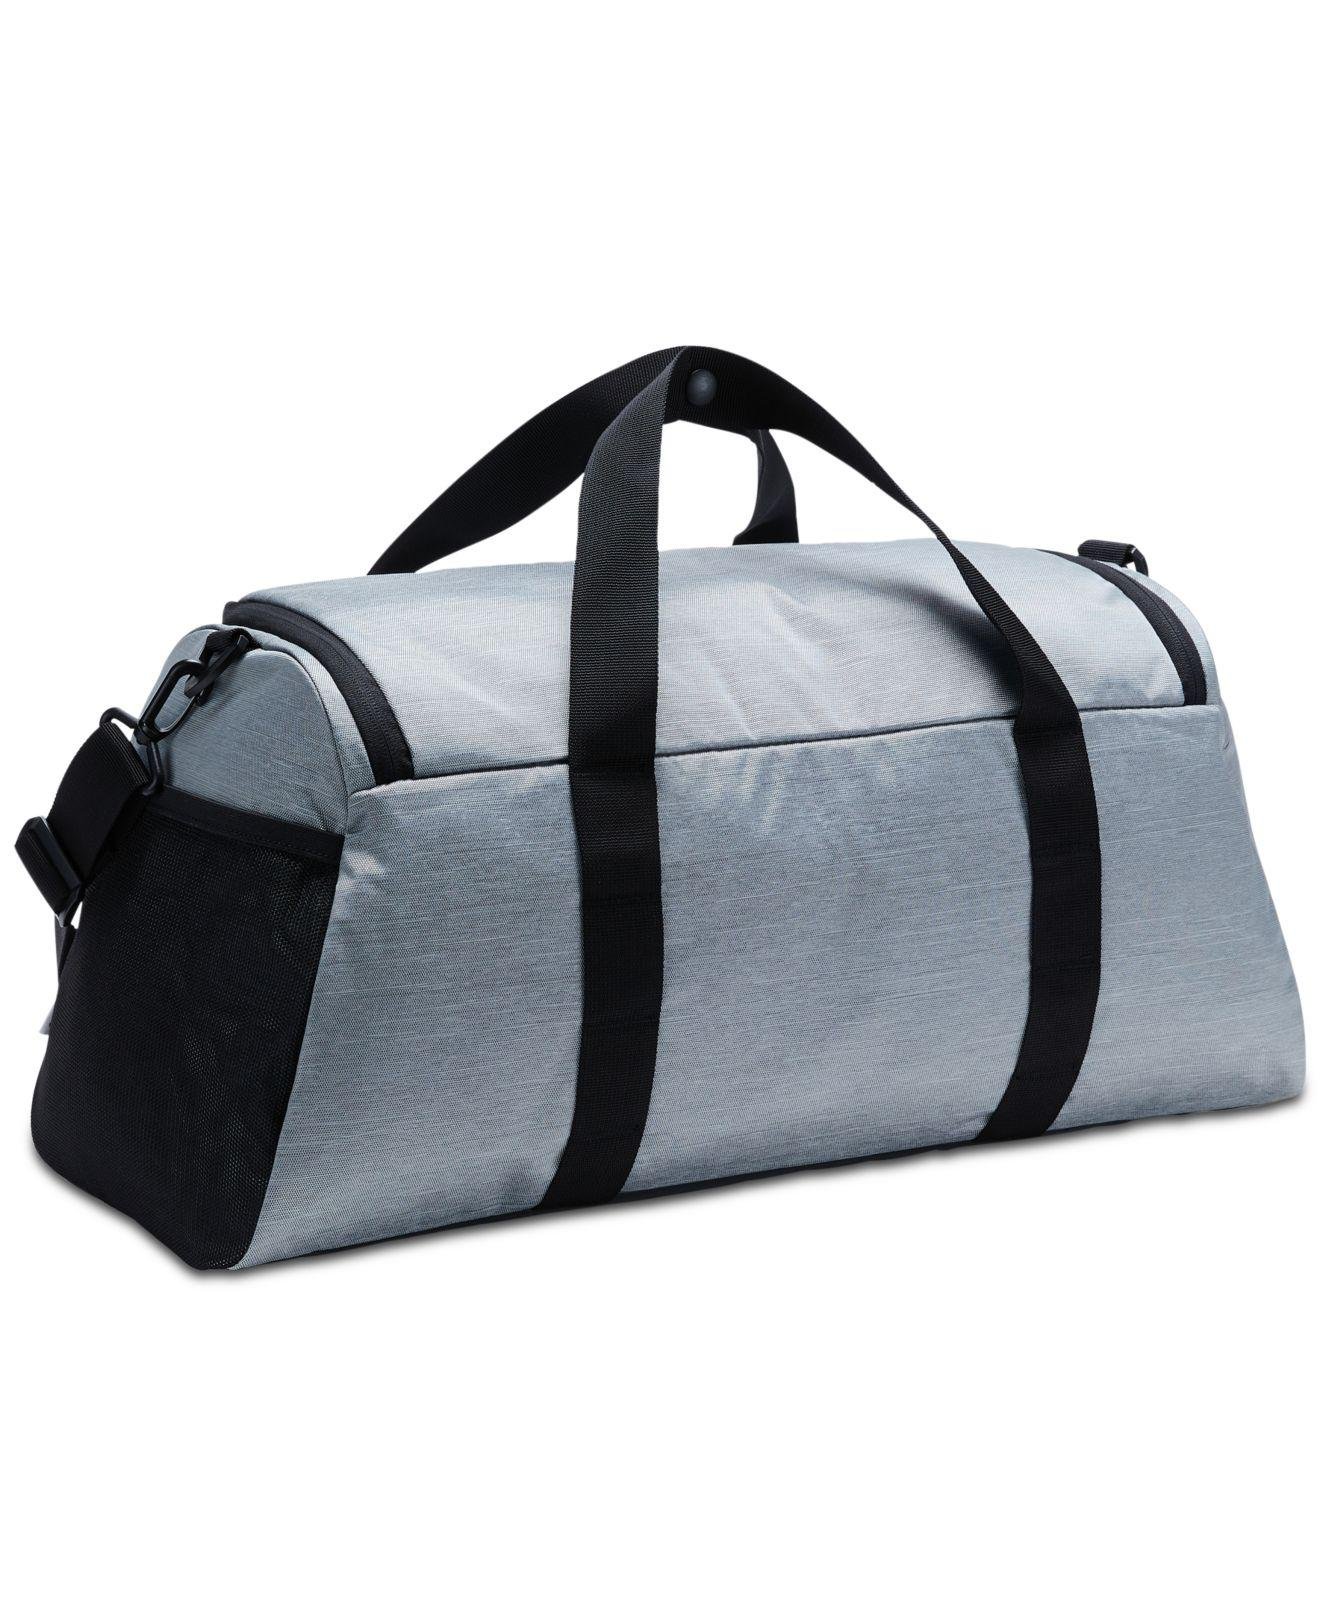 2ad0af790 ... Lyst - Under Armour Storm Undeniable Duffel Bag in Black ...